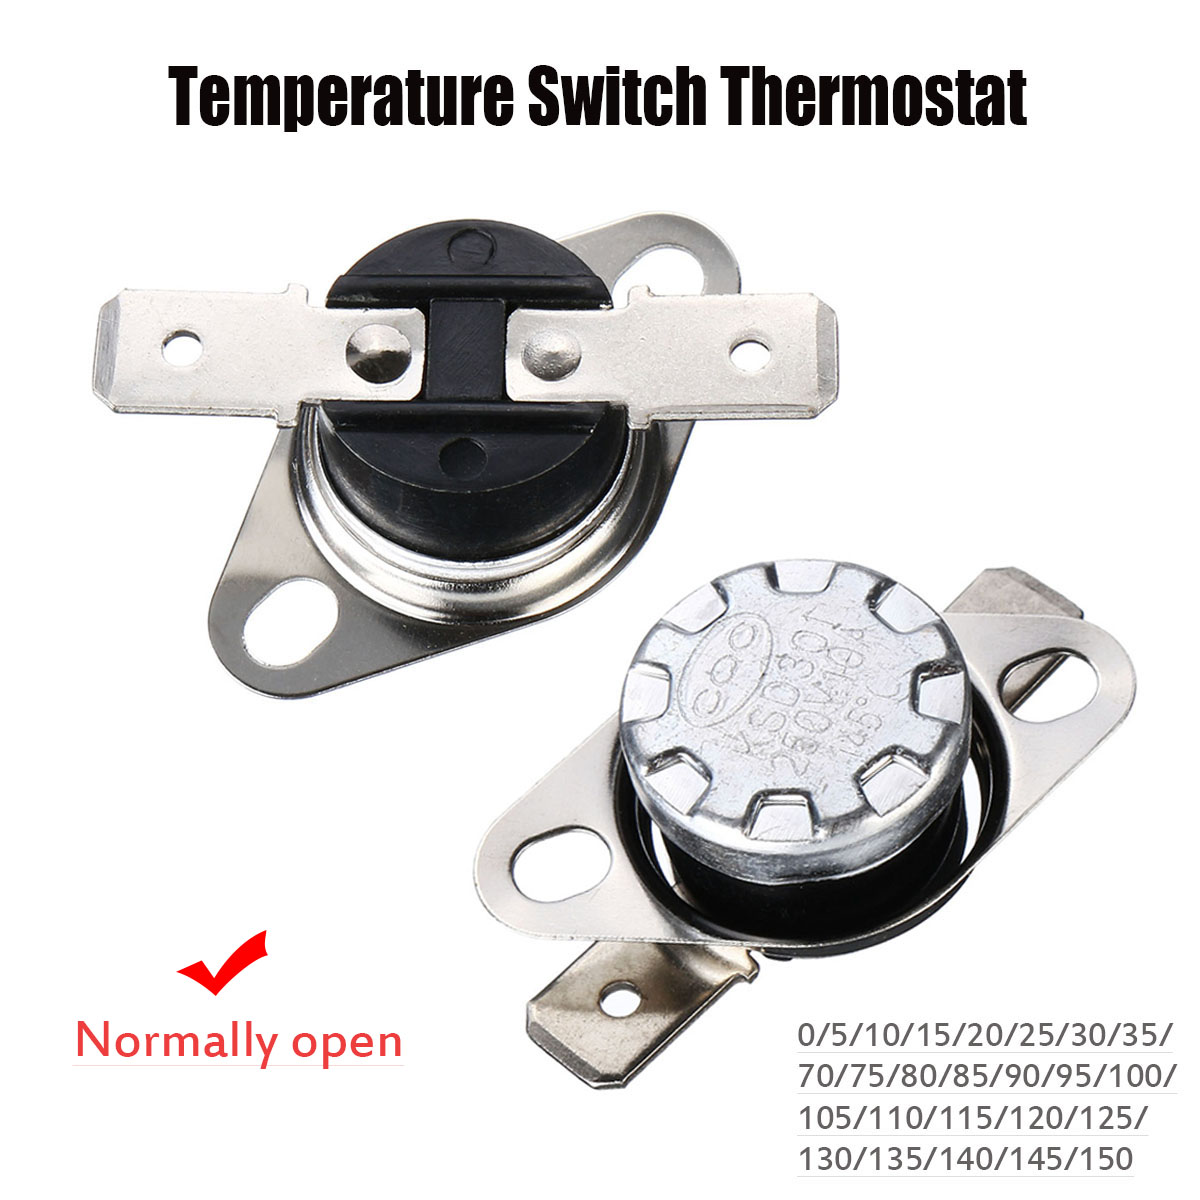 KSD301 Thermostat 45 /° C 10A Normally Open N.0 Pressure Limit Switch Control Pressure Switch Microwave Thermostat Thermal Switch 5 Pieces